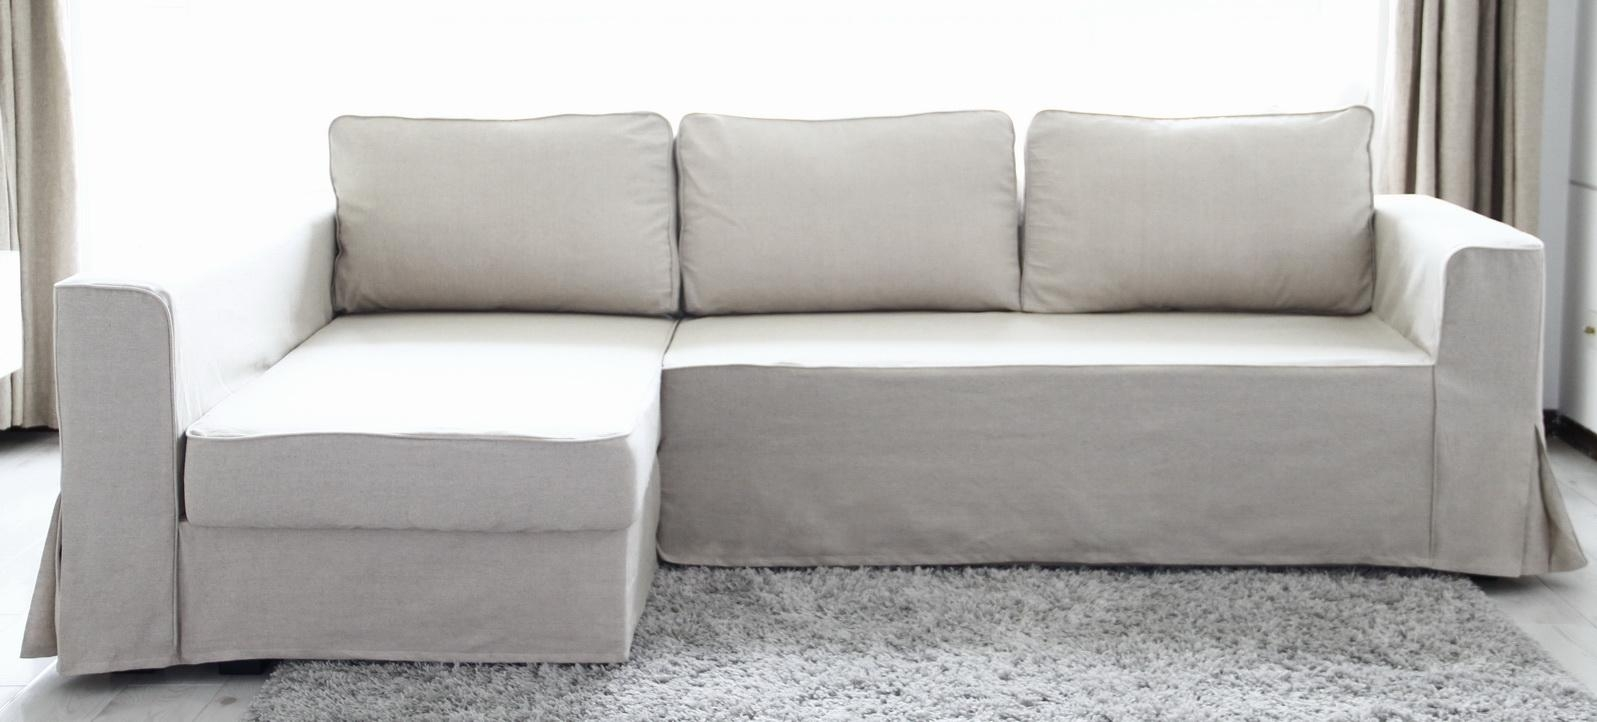 Sofas: Big Lots Futon | Ikea Sofa Bed | Ikea Couch Bed Intended For Big Lots Sofa Sleeper (Image 20 of 20)